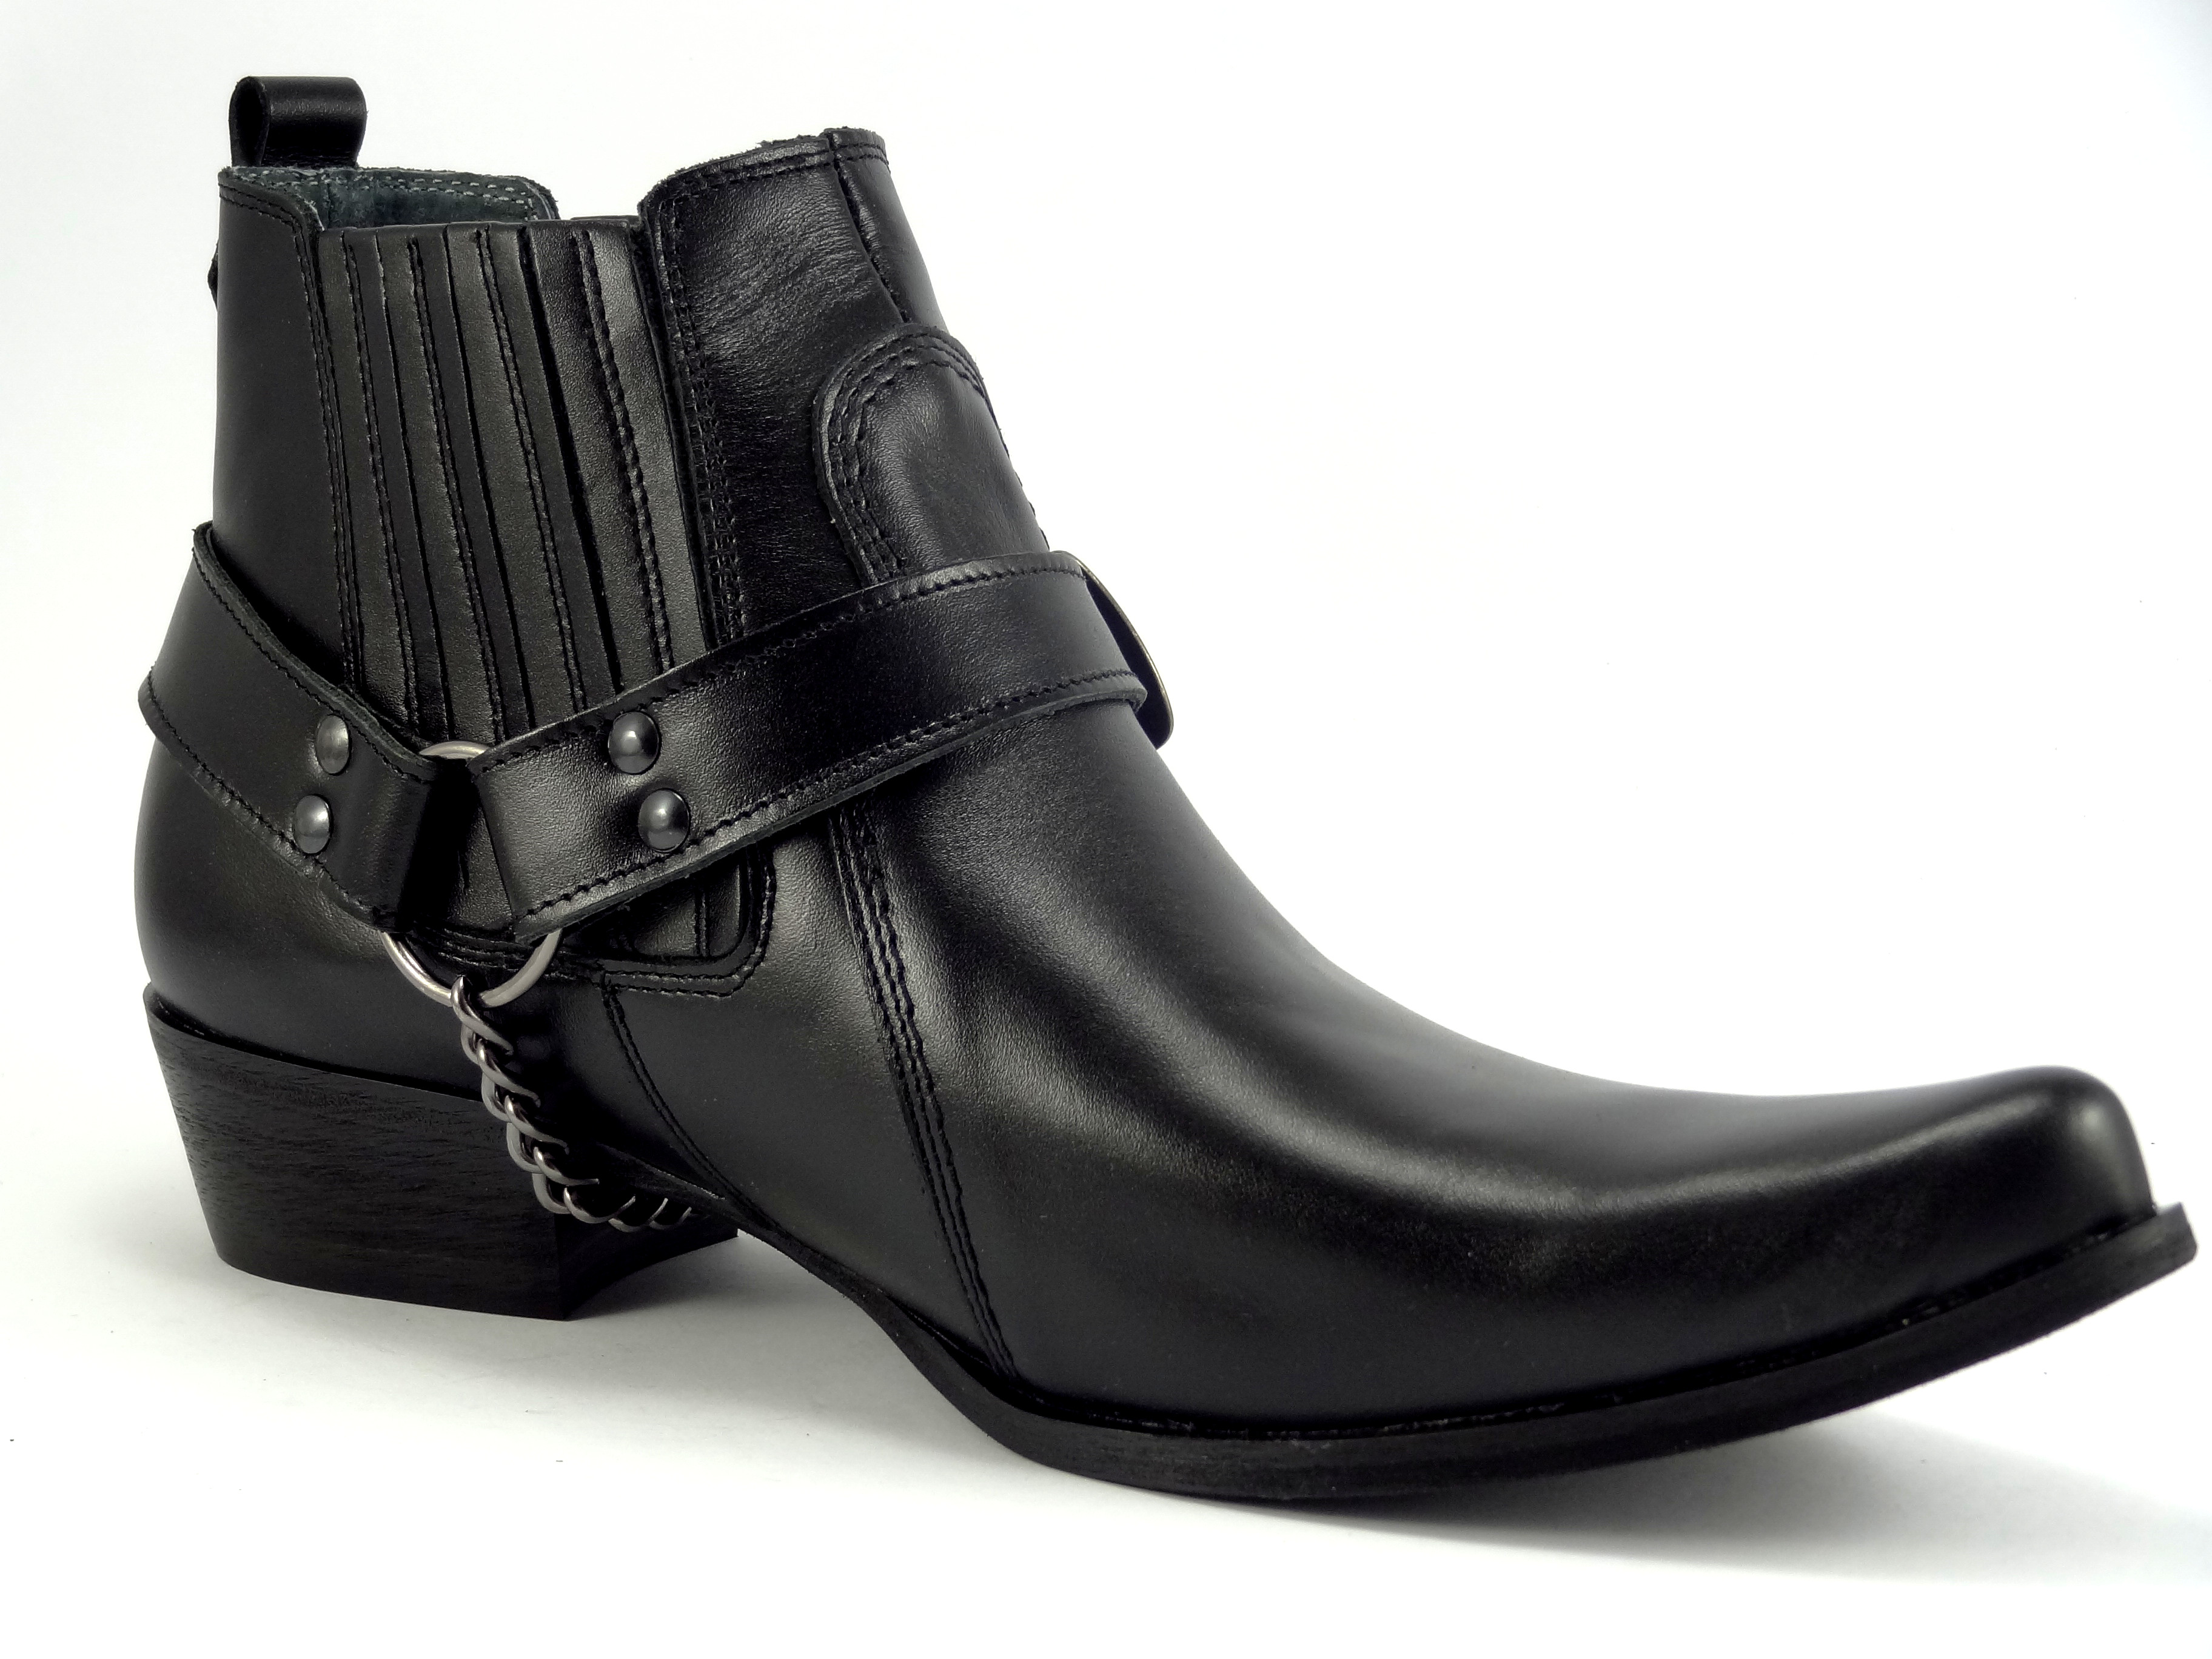 Selma Moto/West 1220 Black